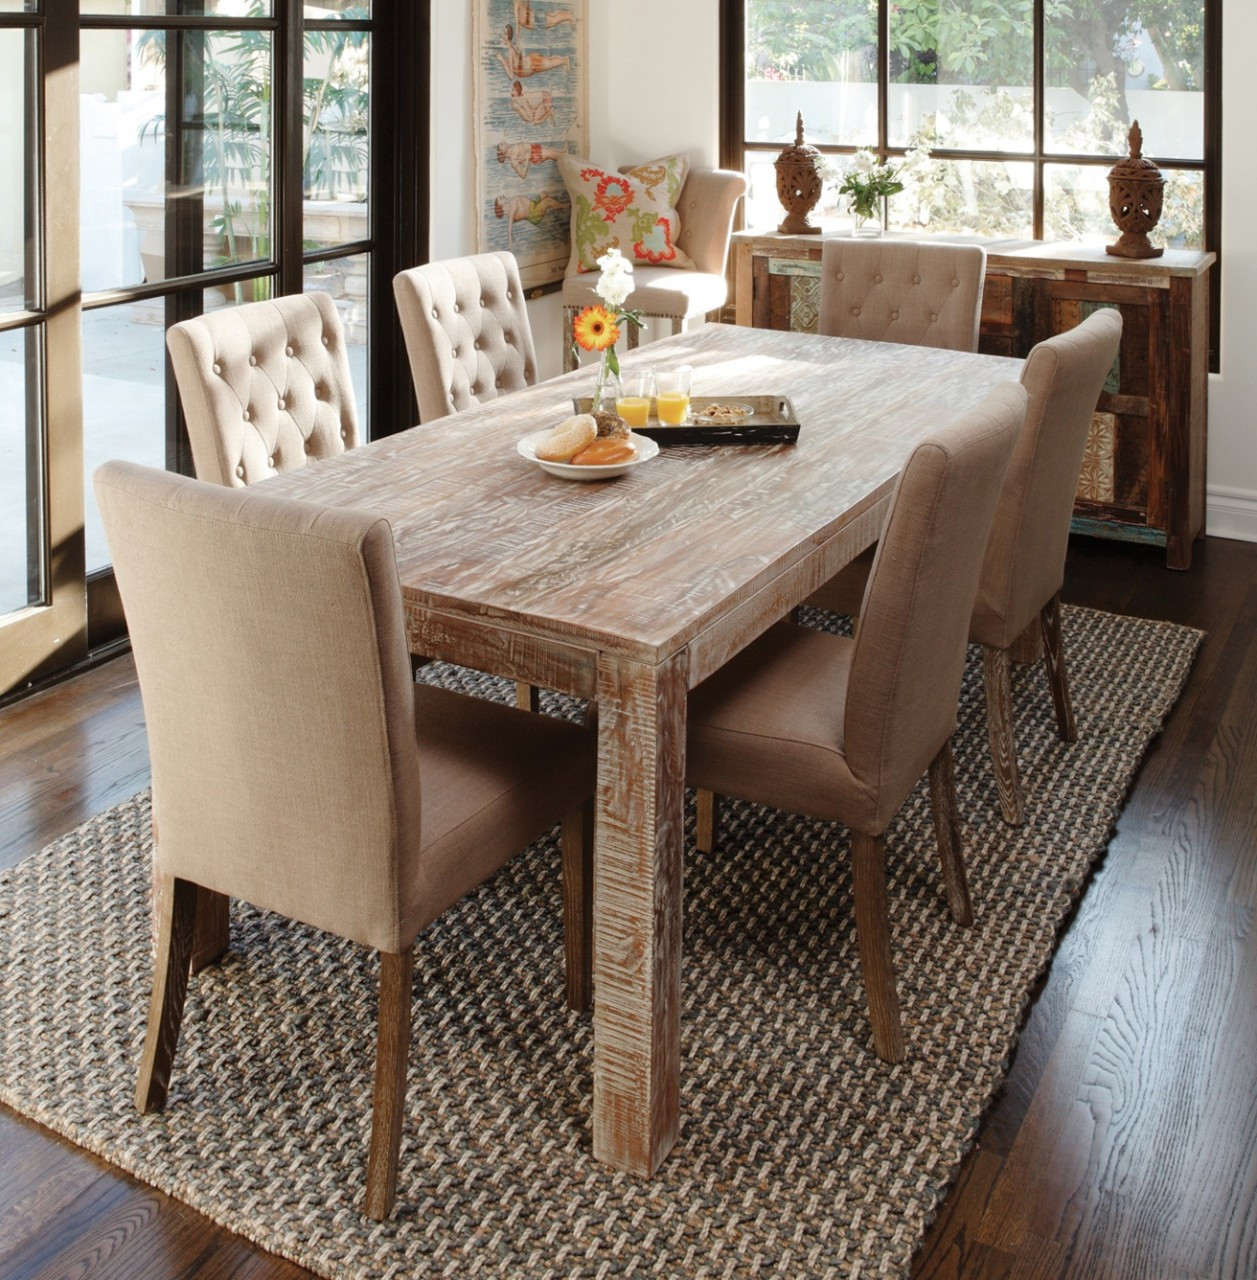 Farmhouse Dining Room Tables hampton farmhouse dining room table 72"